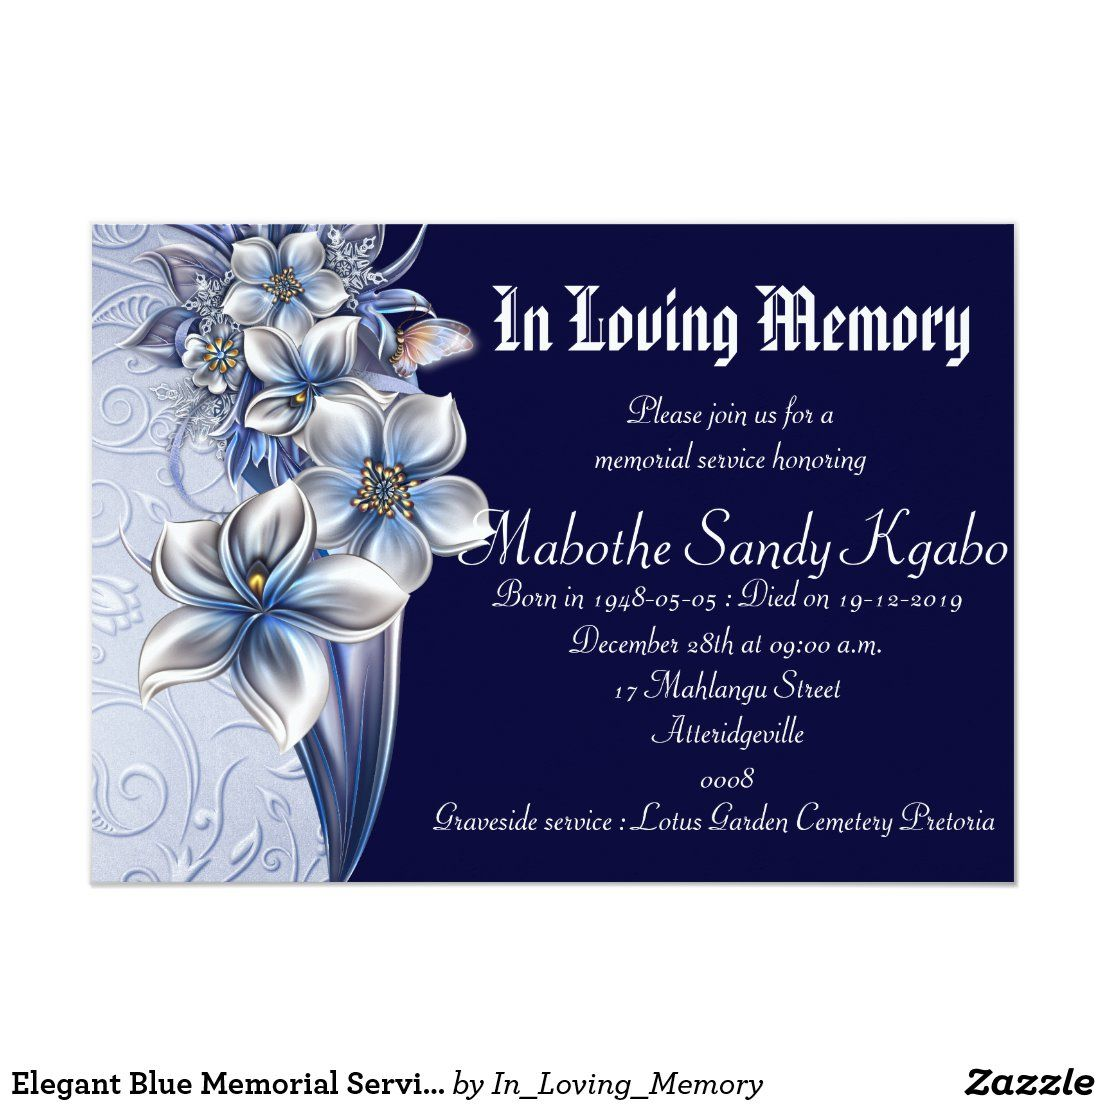 Elegant Blue Memorial Service Announcements Zazzle Com In 2021 Memorial Cards For Funeral Funeral Invitation Memorial Service Invitation Memorial service announcement template free